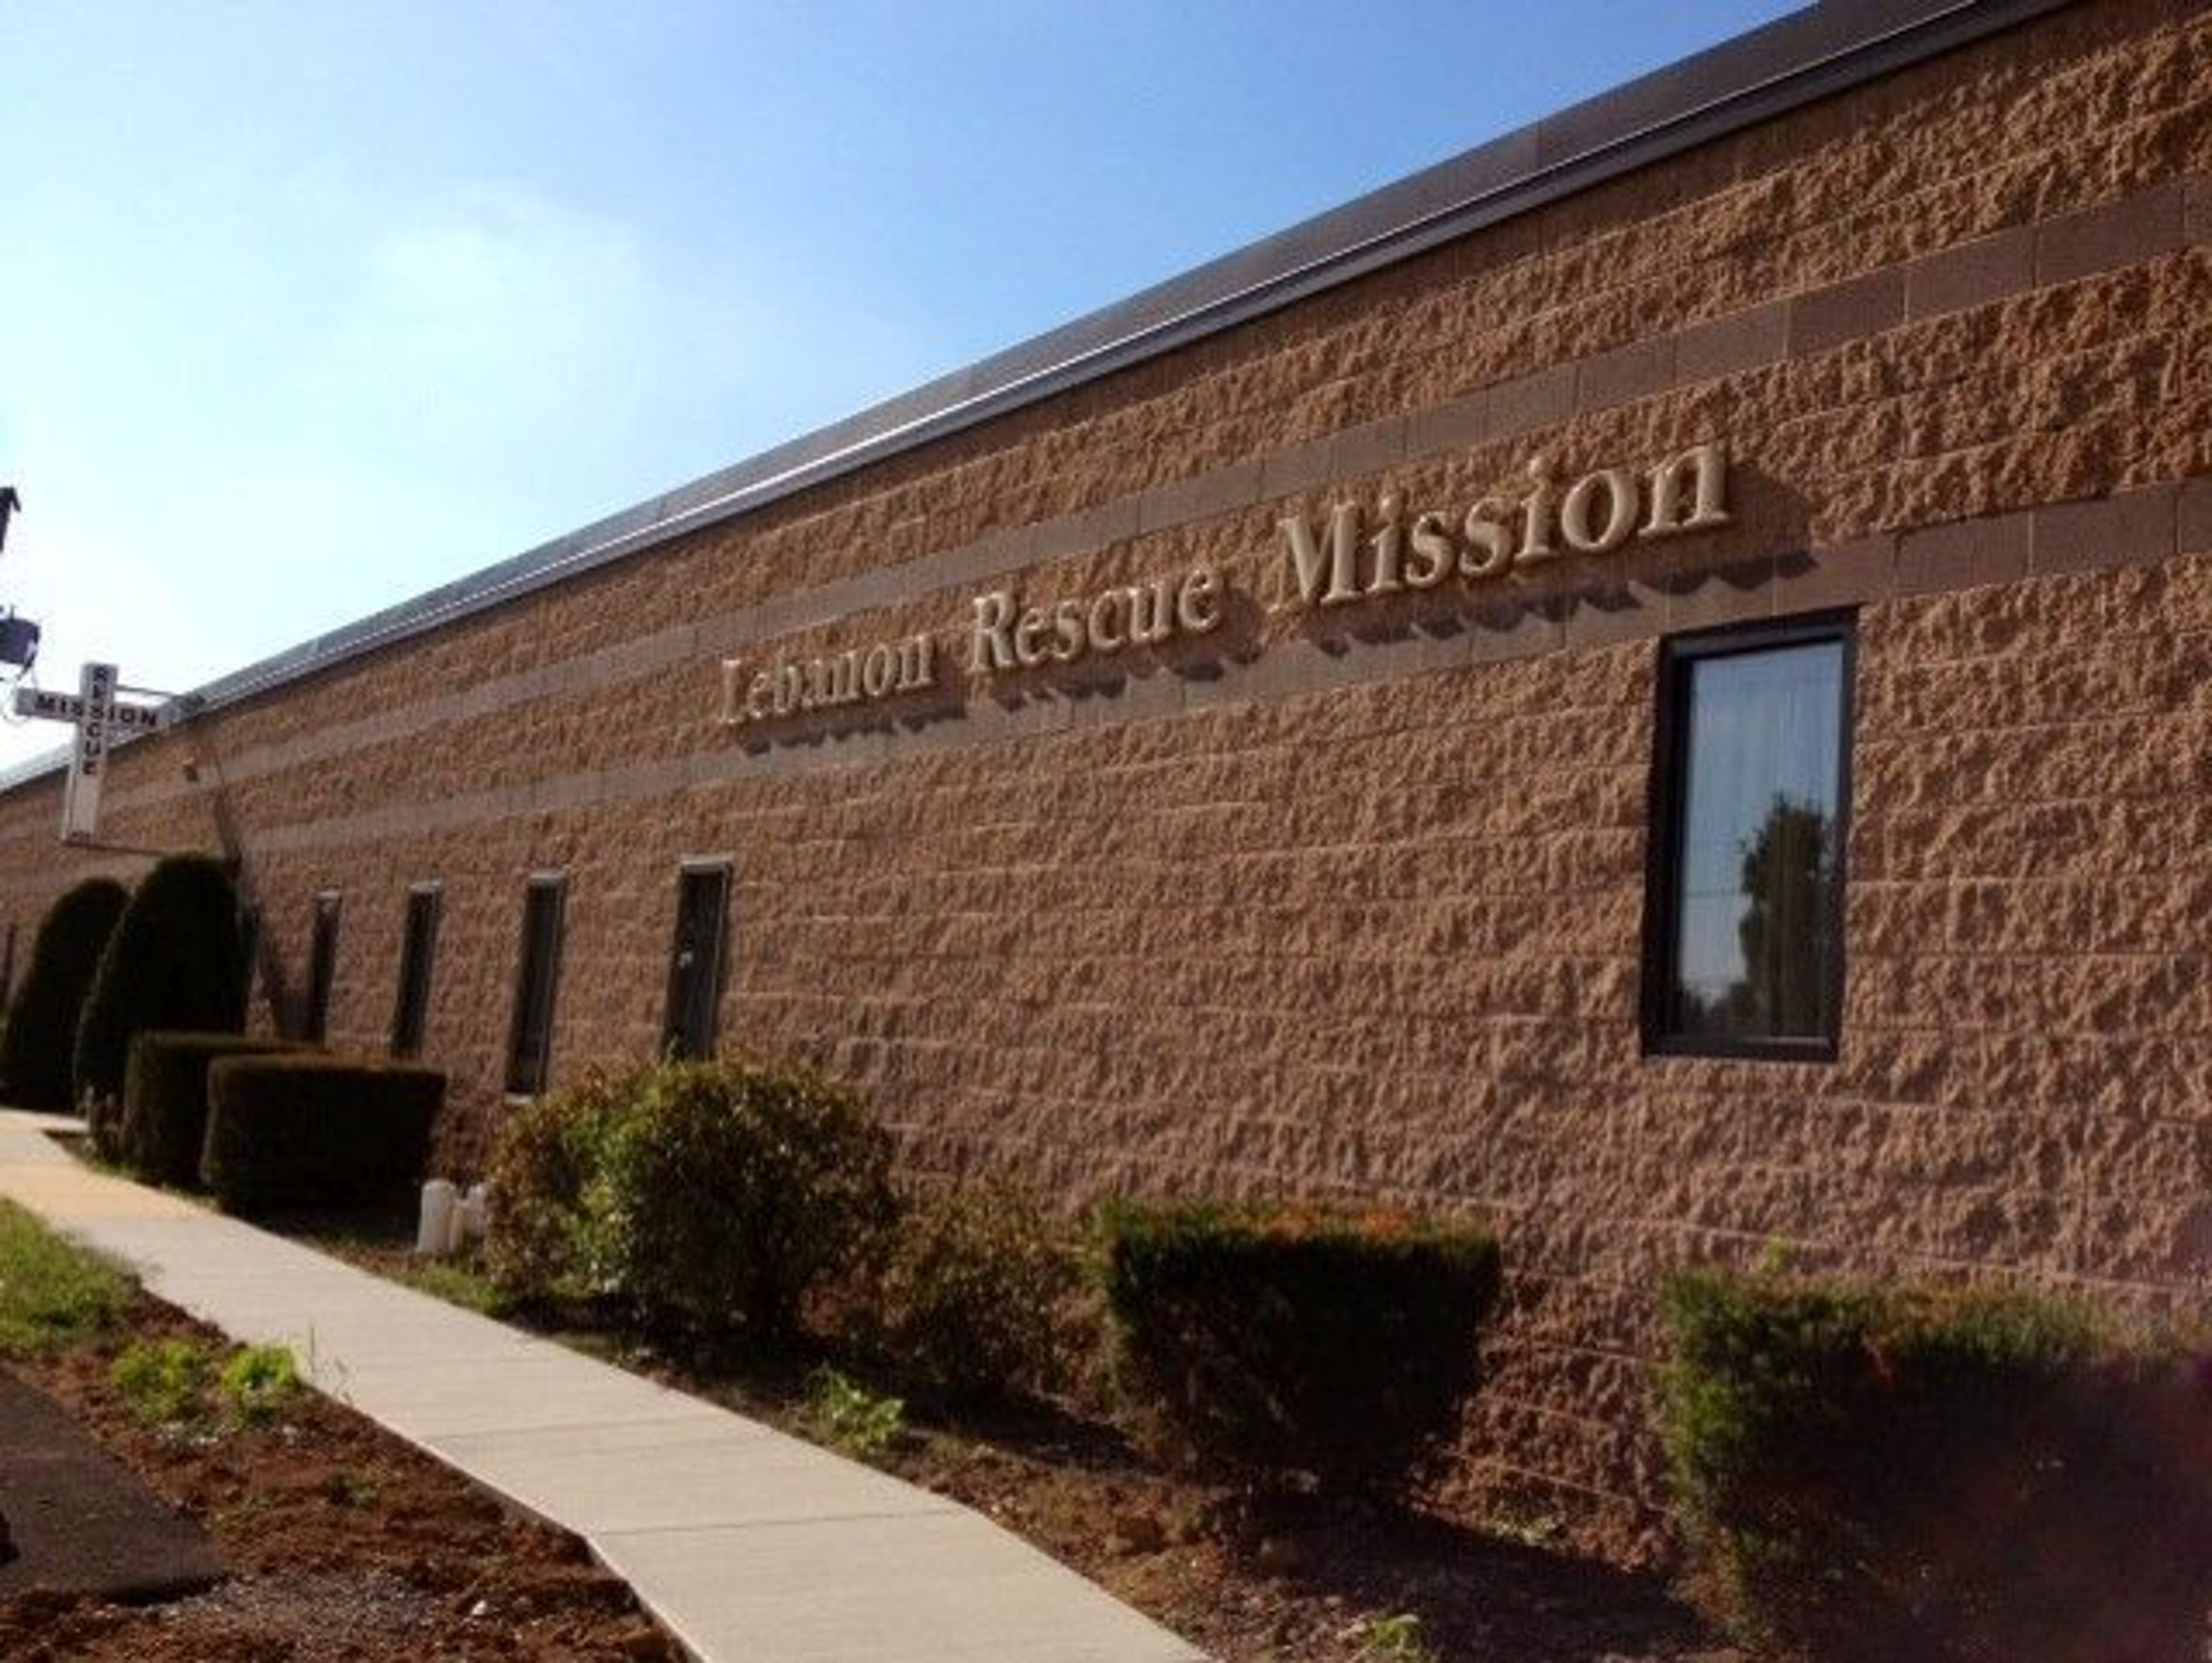 Lebanon Rescue Mission is dedicated to representing